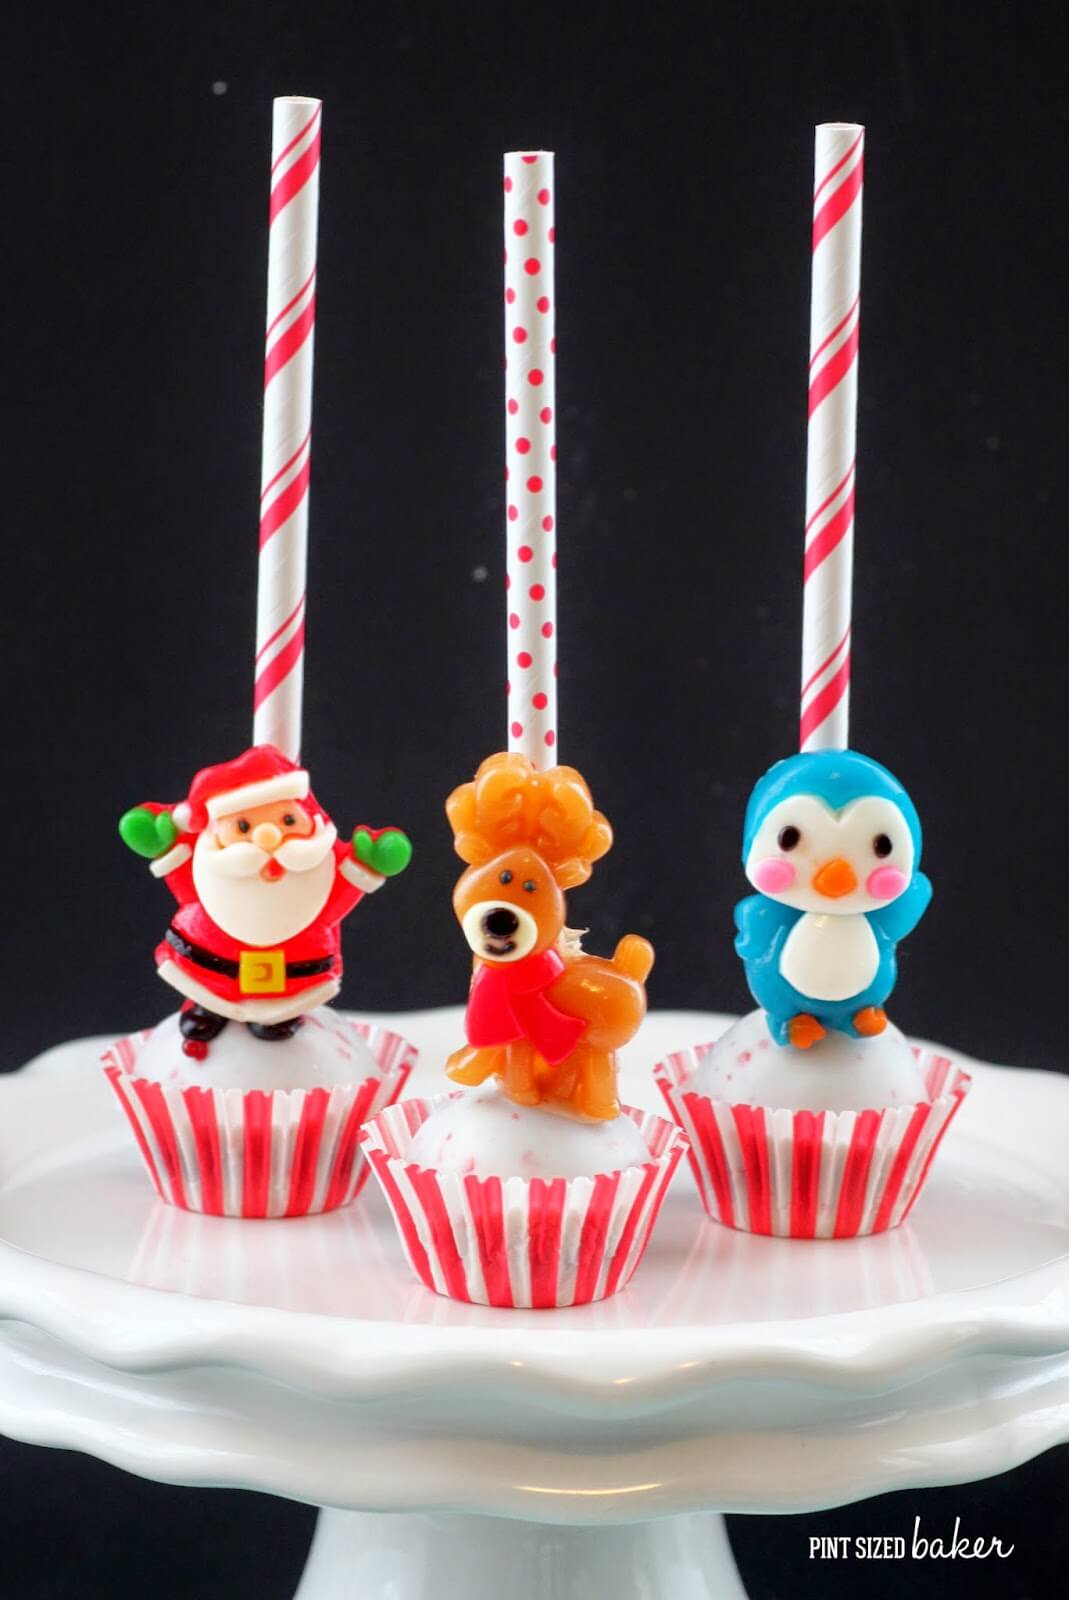 Over 500 Cake Pop Tutorials That You Can Make At Home